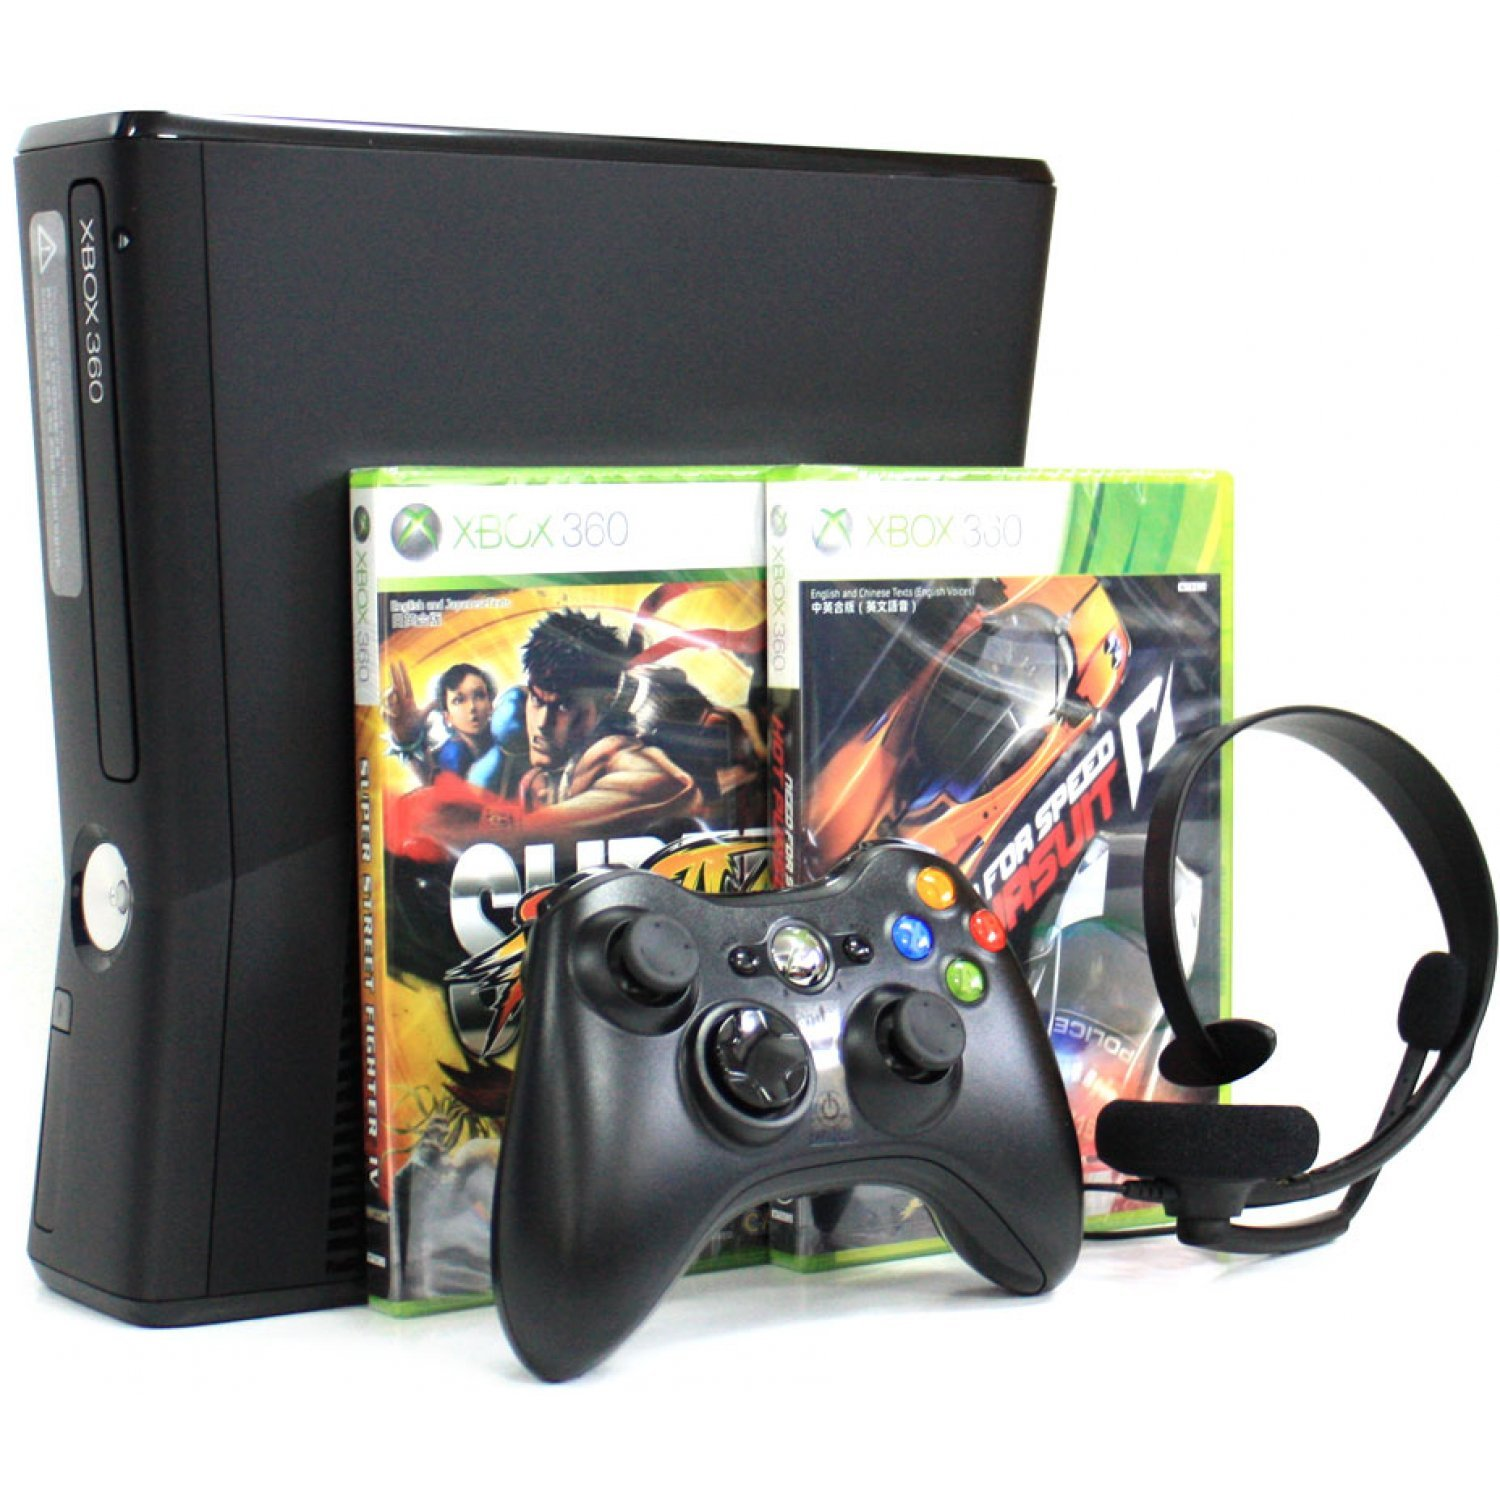 Xbox 360 Elite Slim Console 250gb Bundle Incl Street Fighter 4